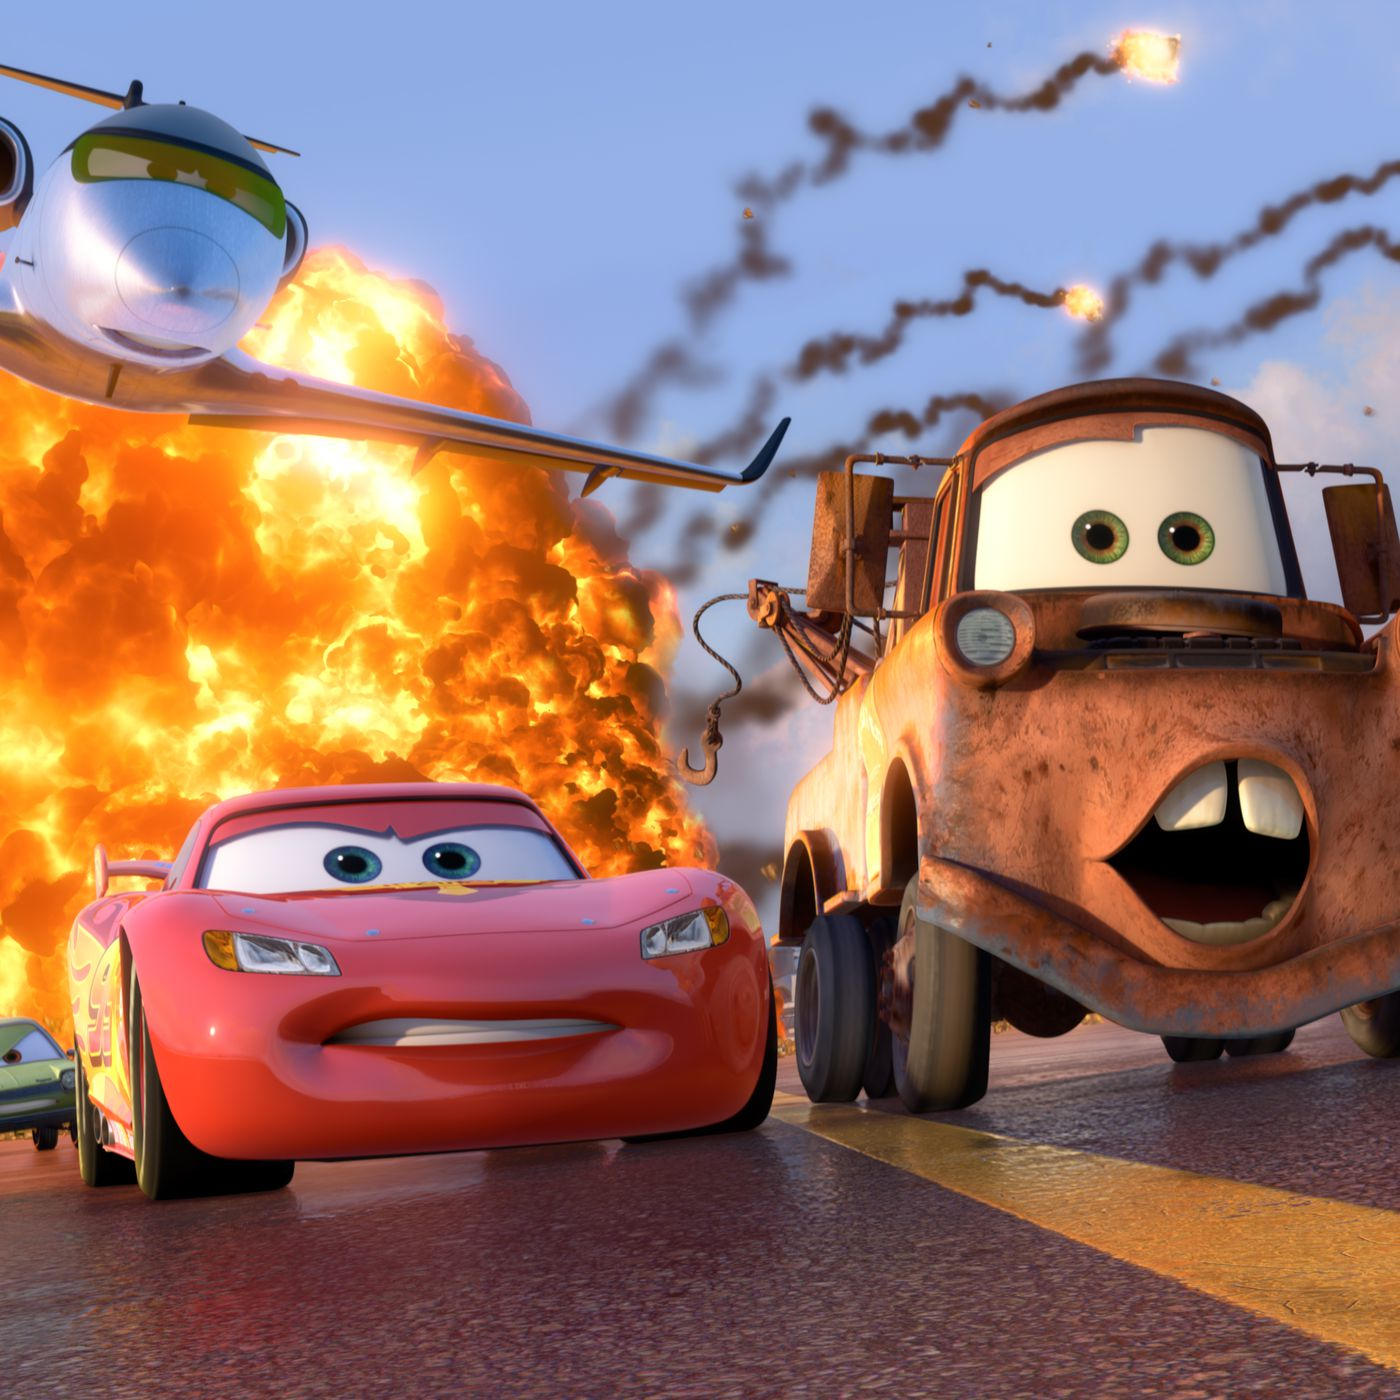 Cars 2 Was So Bad That Even Pixar Is Trying To Pretend It Doesnt